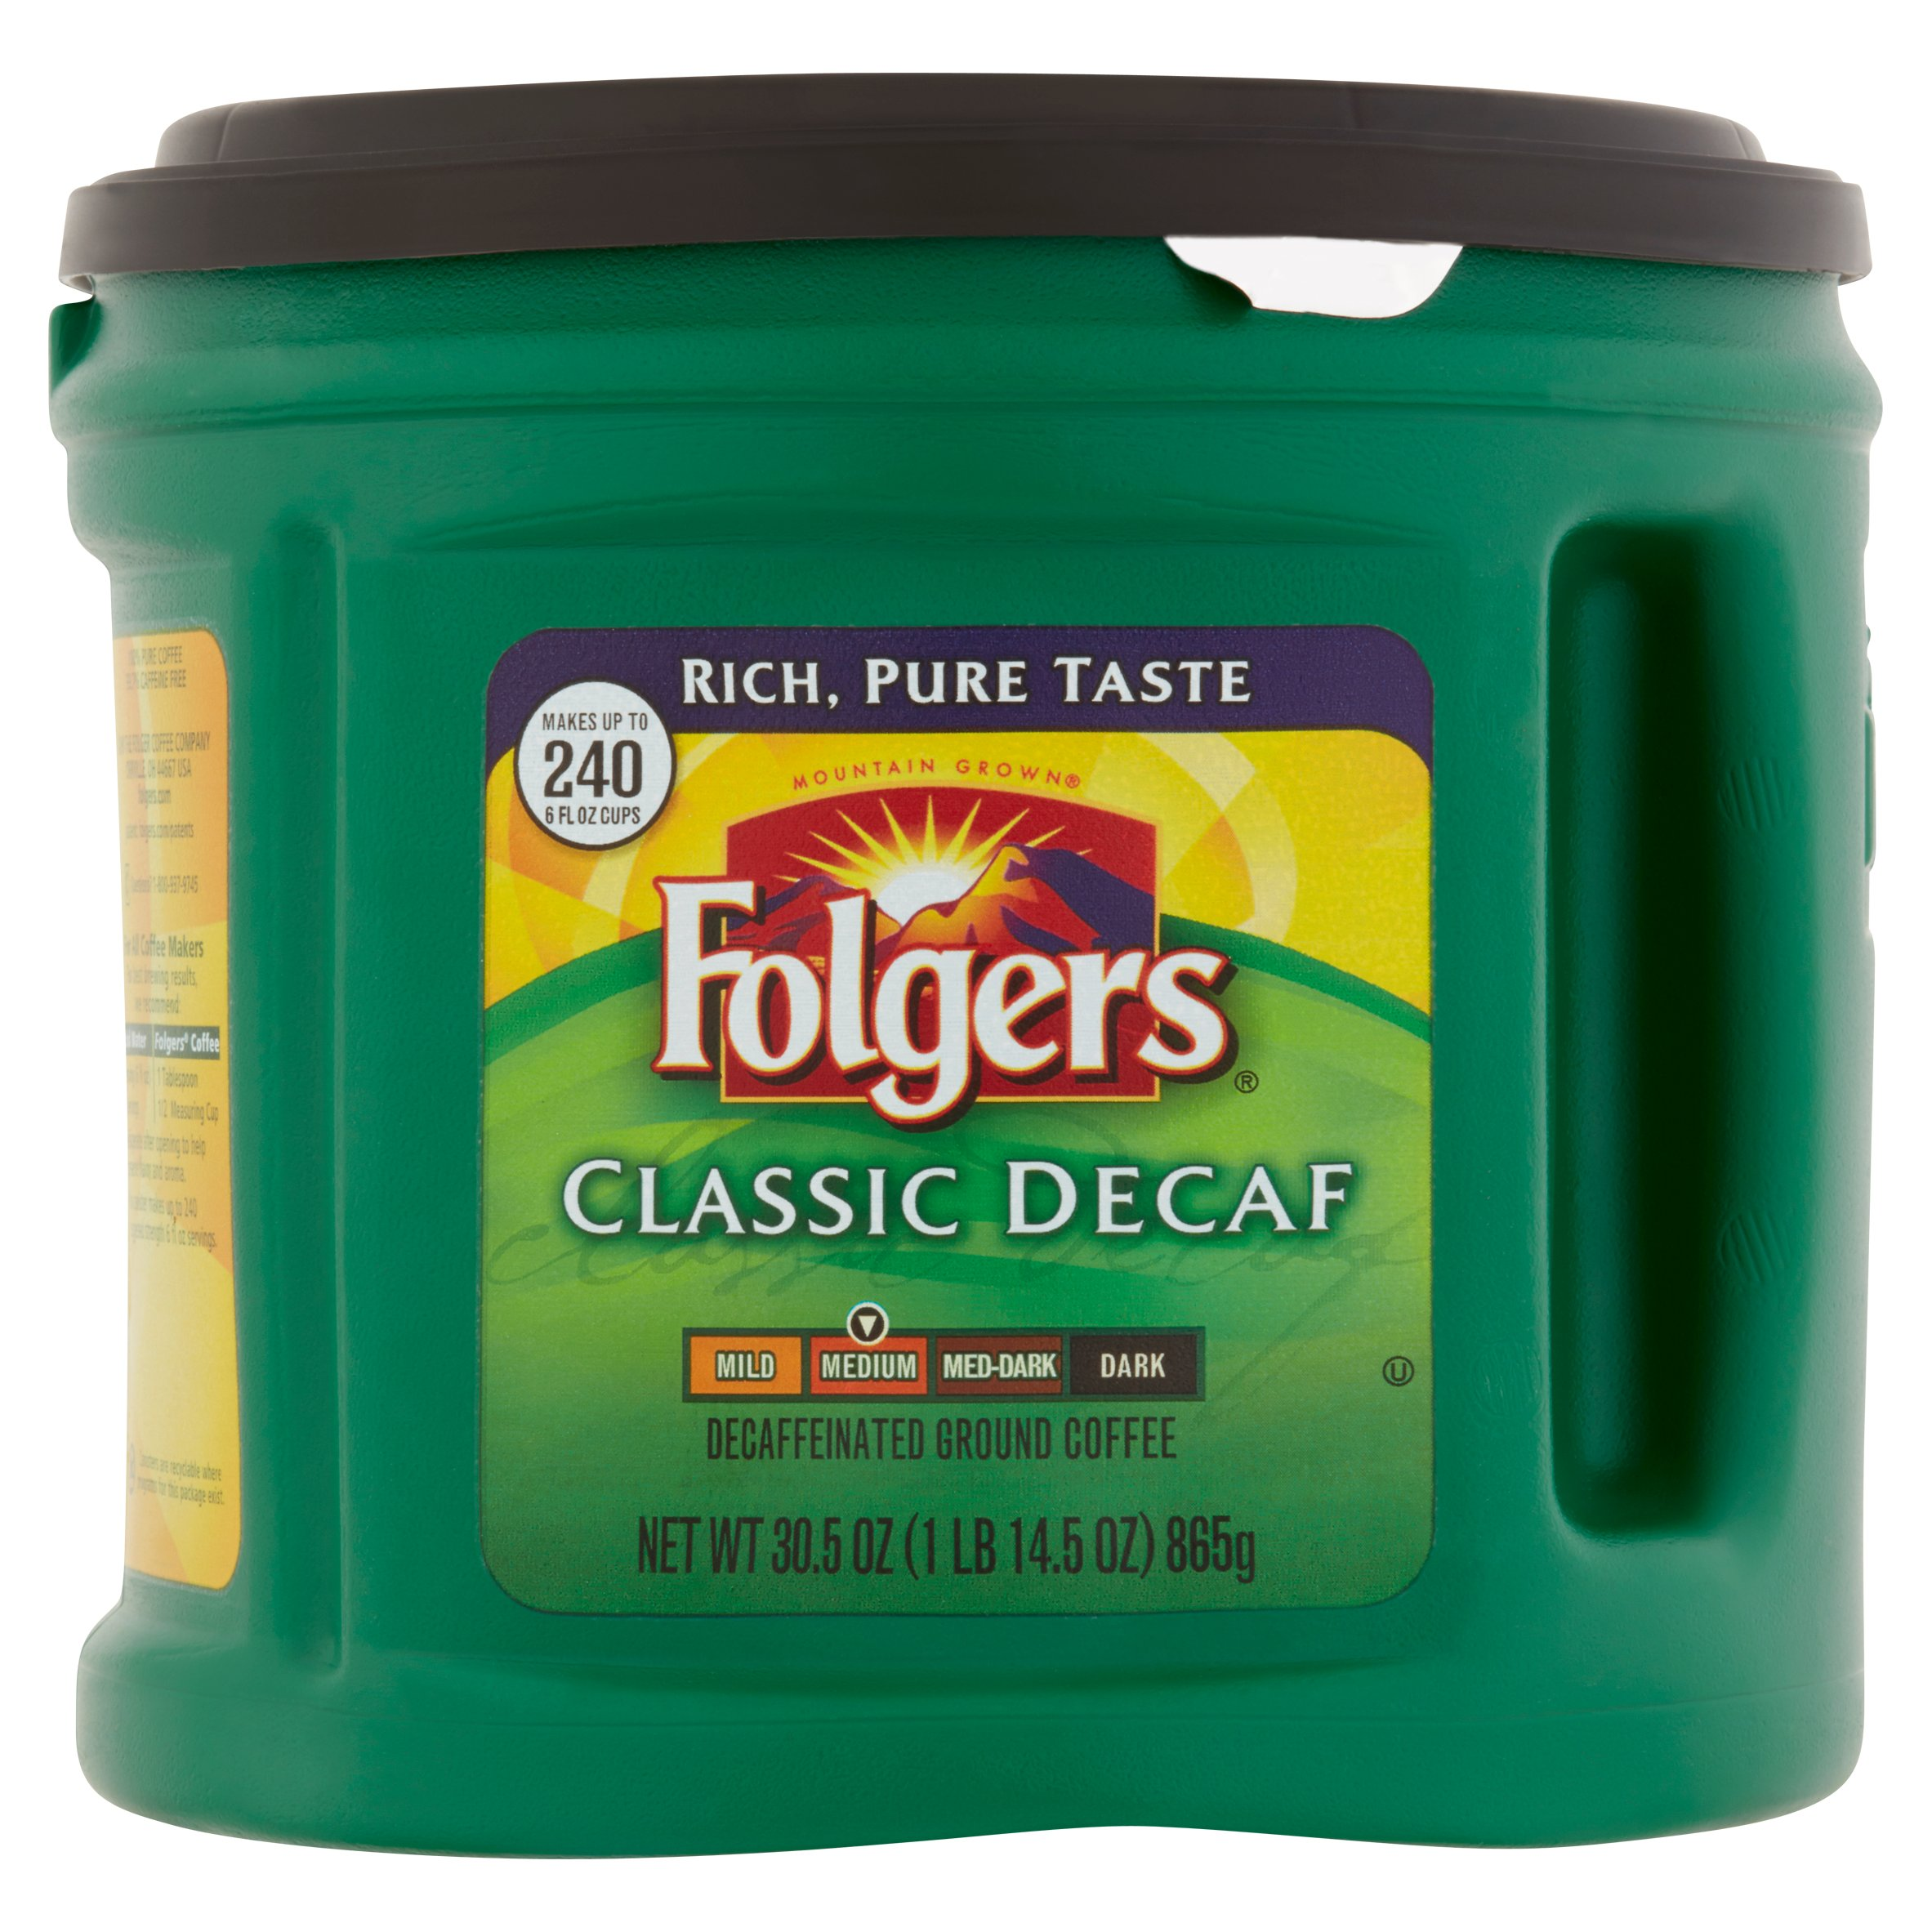 Folgers Mountain Grown Classic Decaf Medium Decaffeinated Ground Coffee, 30.5 oz